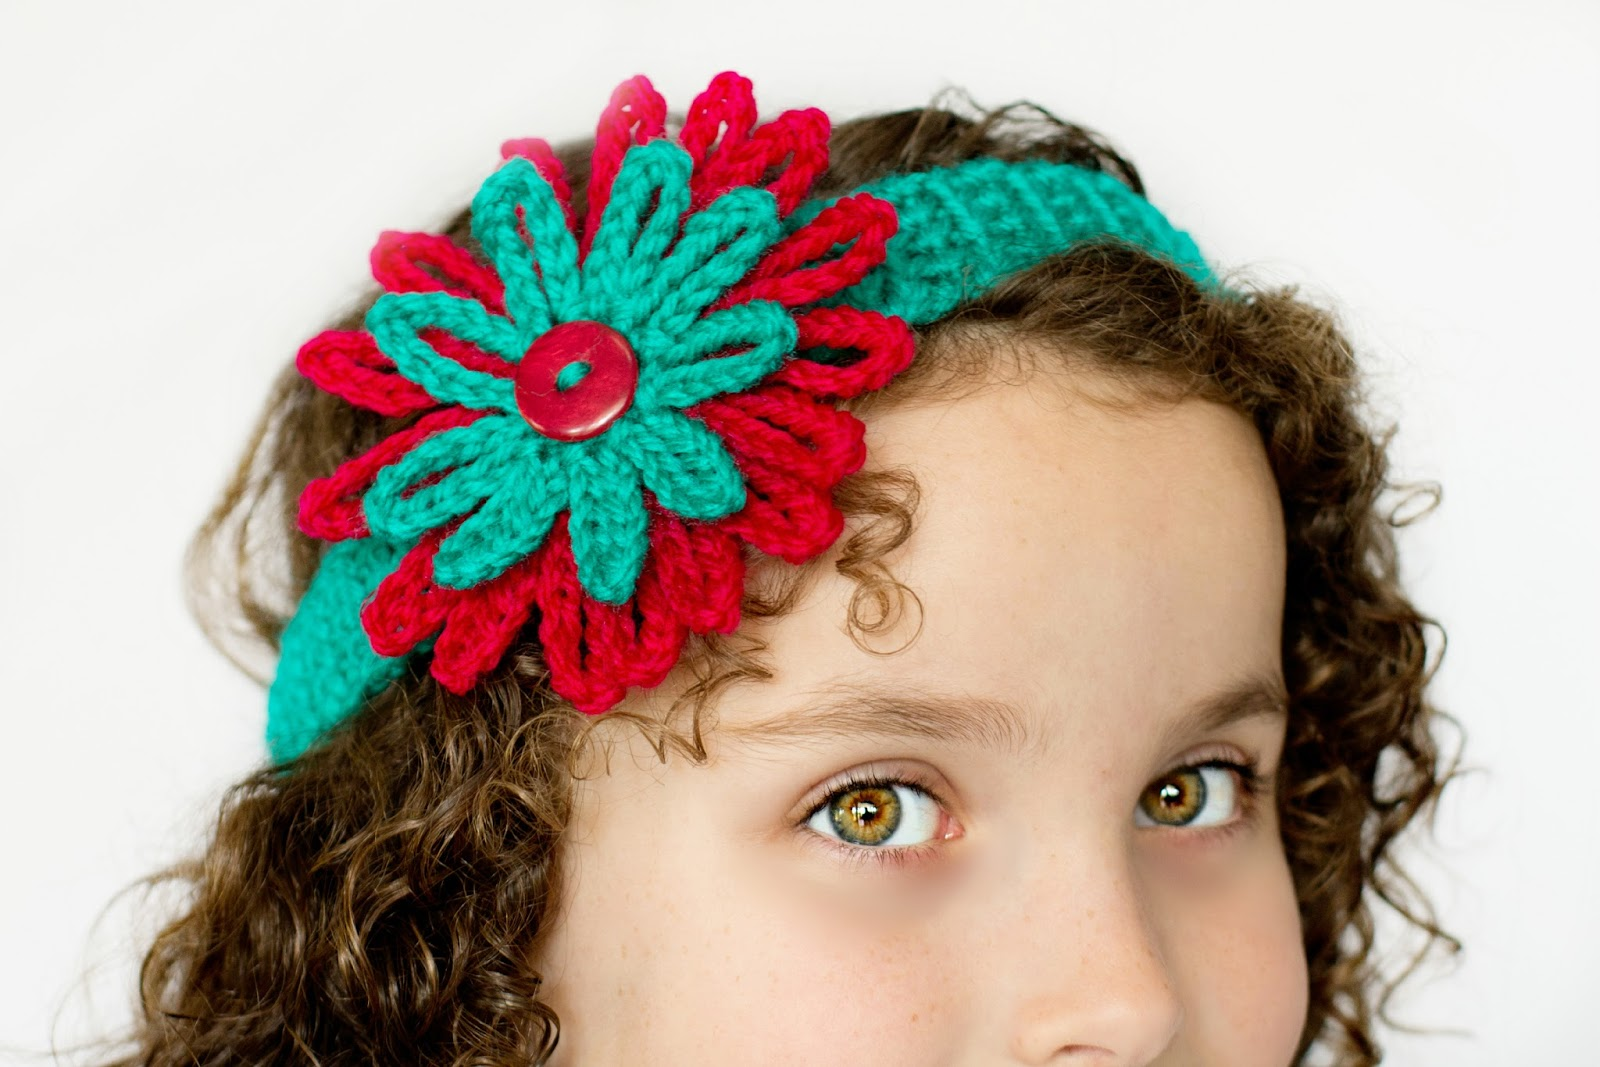 Free Crochet Pattern Headband With Flower : Hopeful Honey Craft, Crochet, Create: Season Of Giving ...